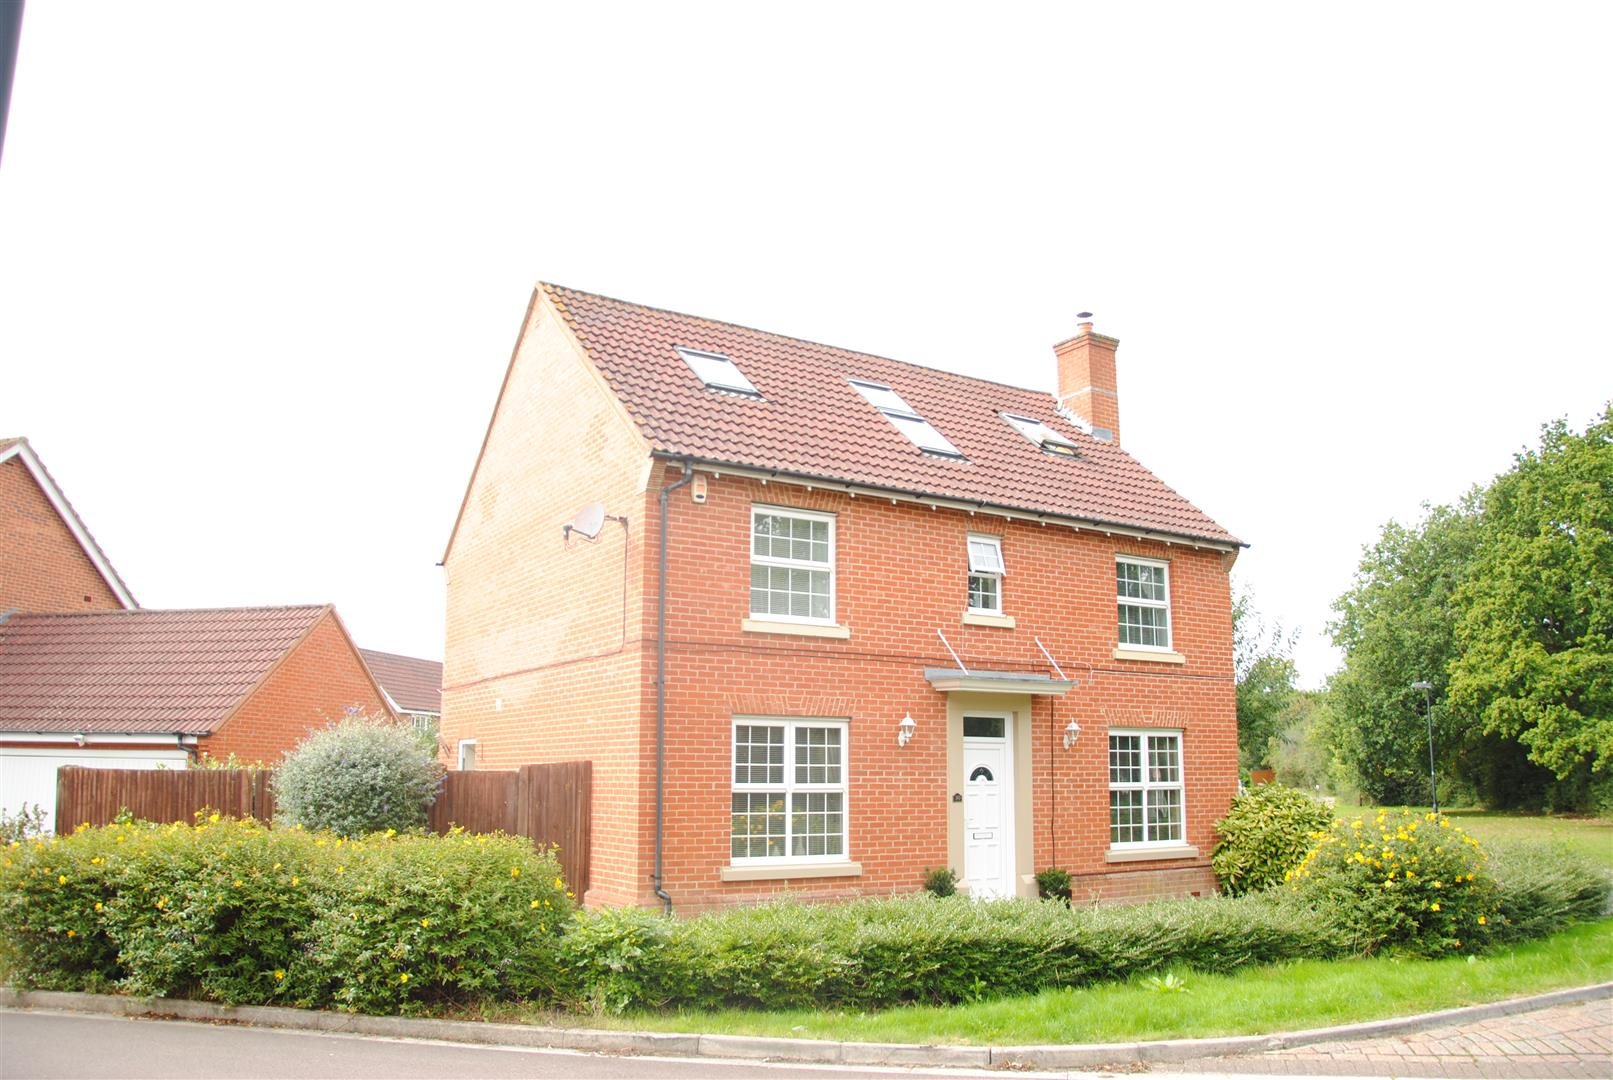 5 Bedrooms Detached House for sale in Wynwards Road, Swindon